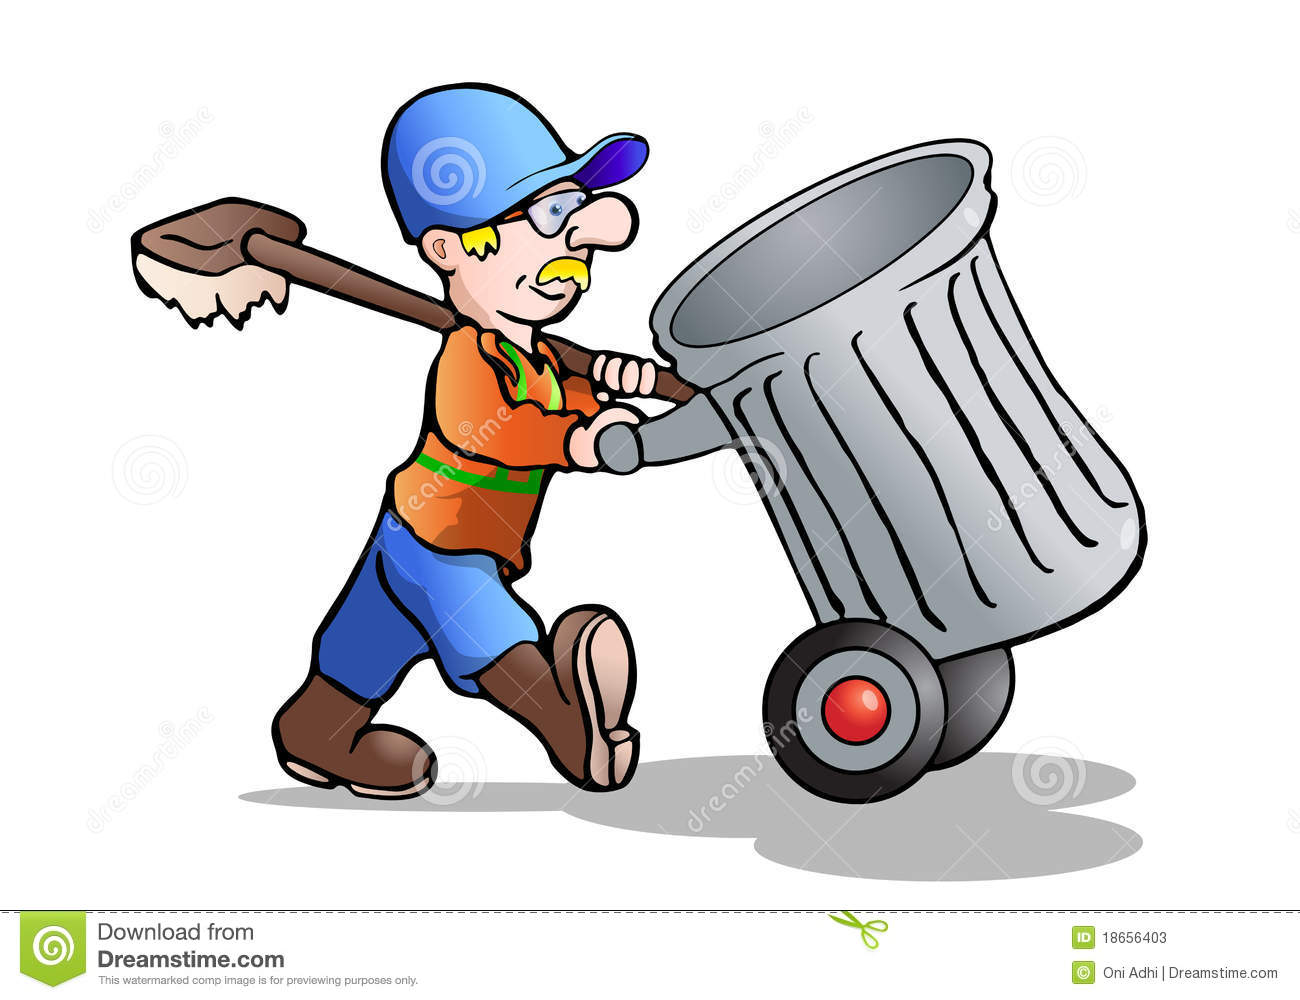 janitor stock illustrations 1 712 janitor stock illustrations rh dreamstime com janitorial clipart free Janitorial Services